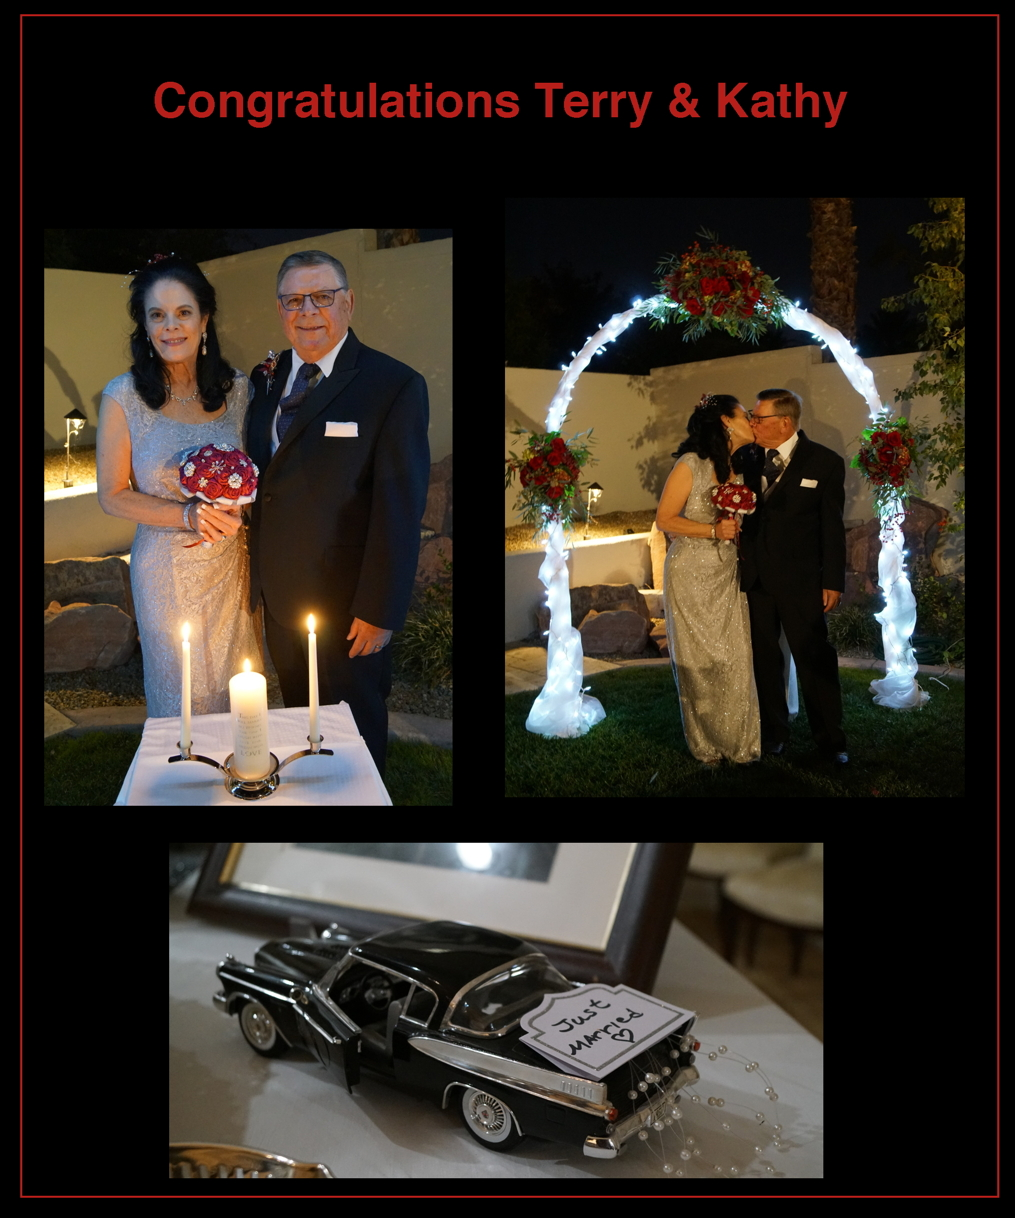 Congratulations Terry and Kathy